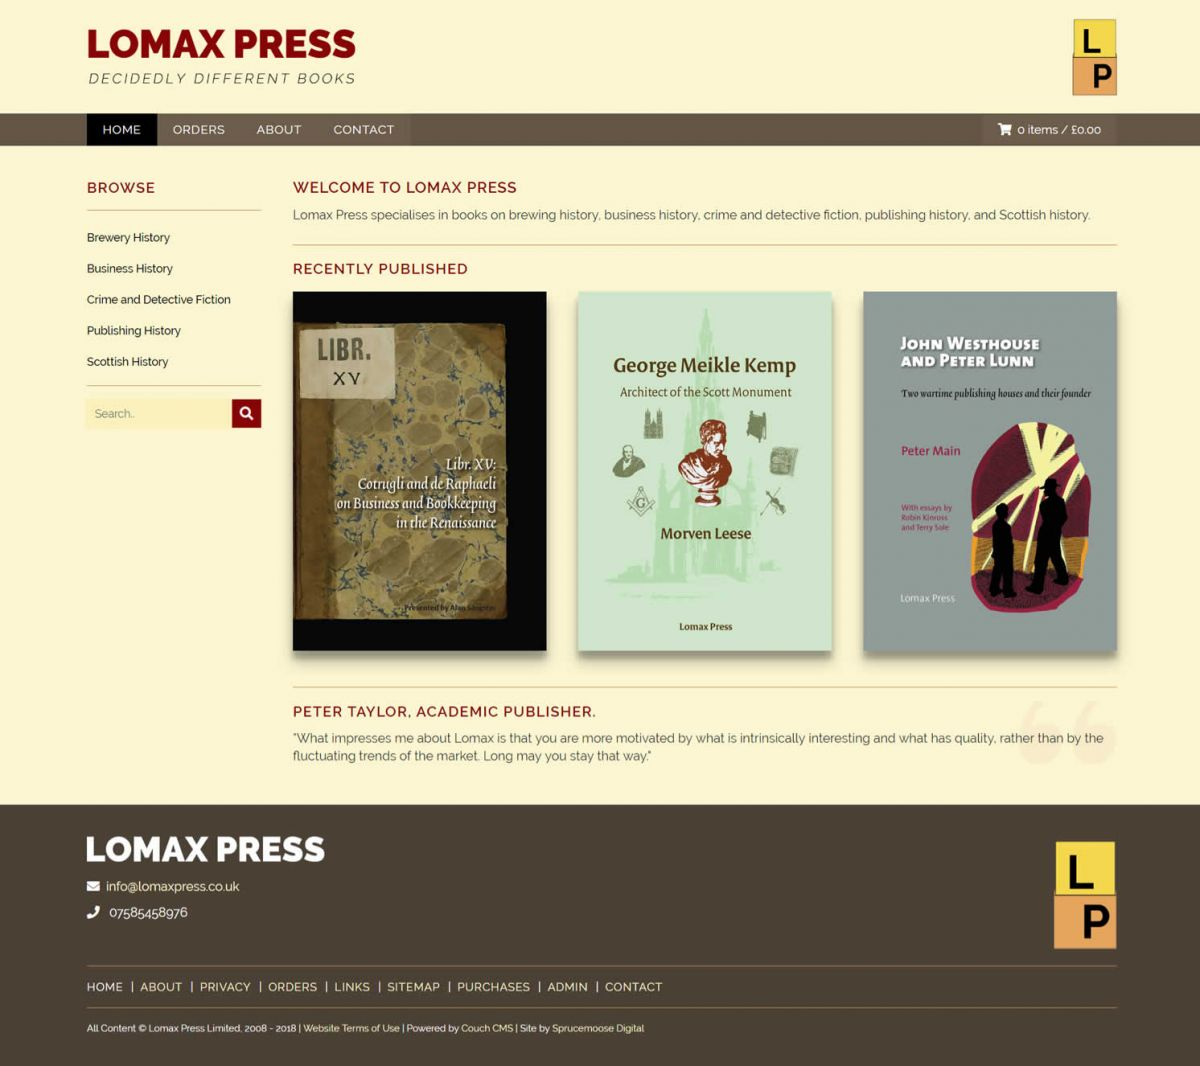 Lomax Press